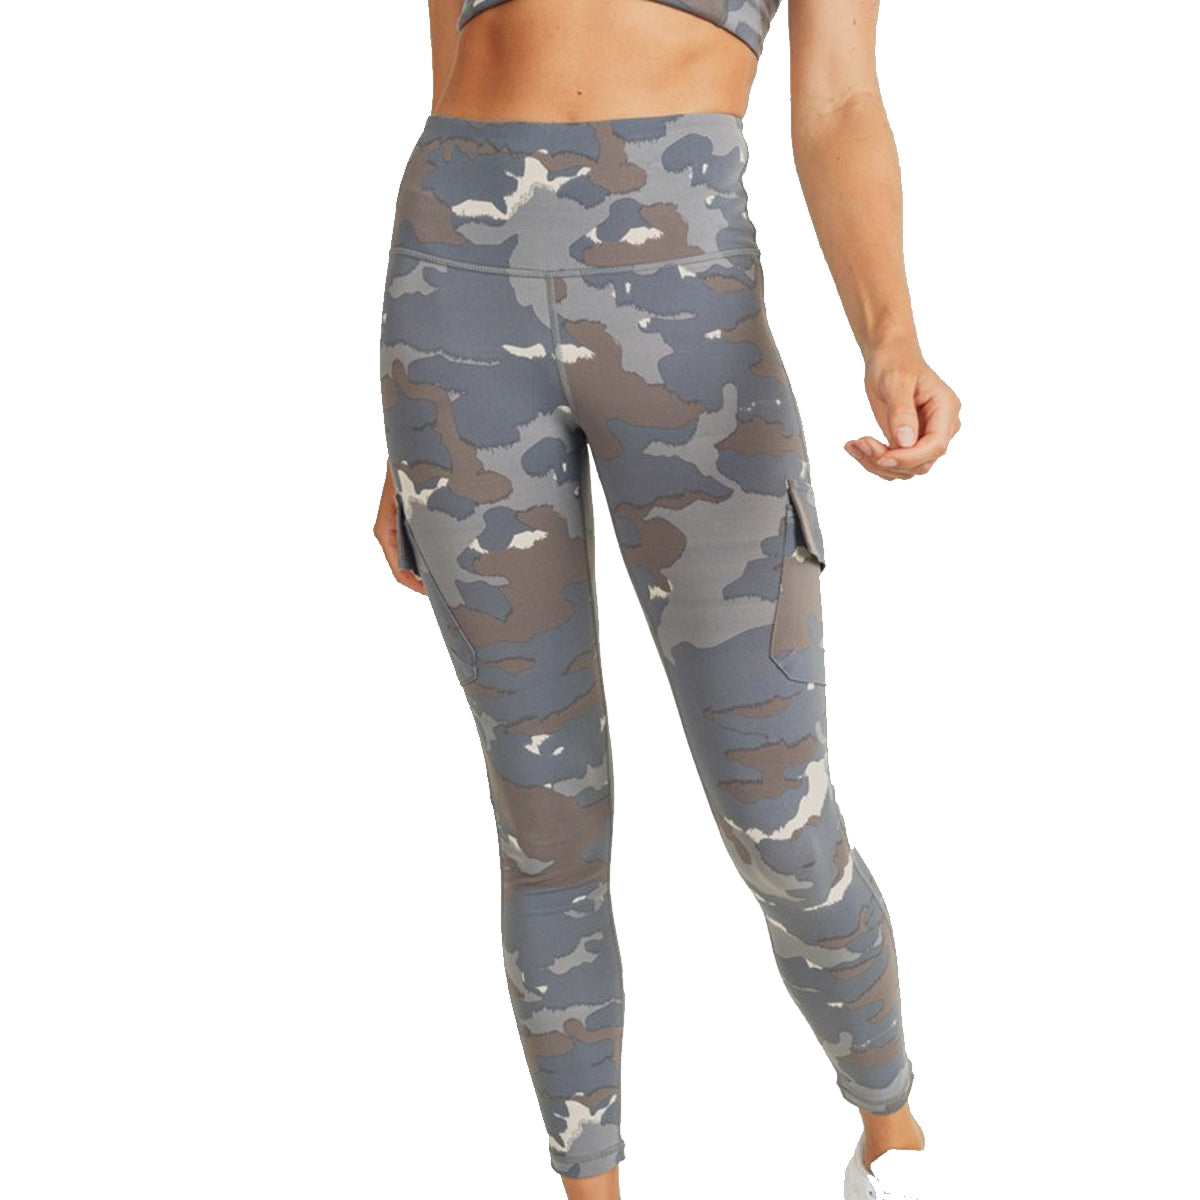 Mono B Women's Plus Size Cargo Hybrid Leggings - Blue Tundra Camo